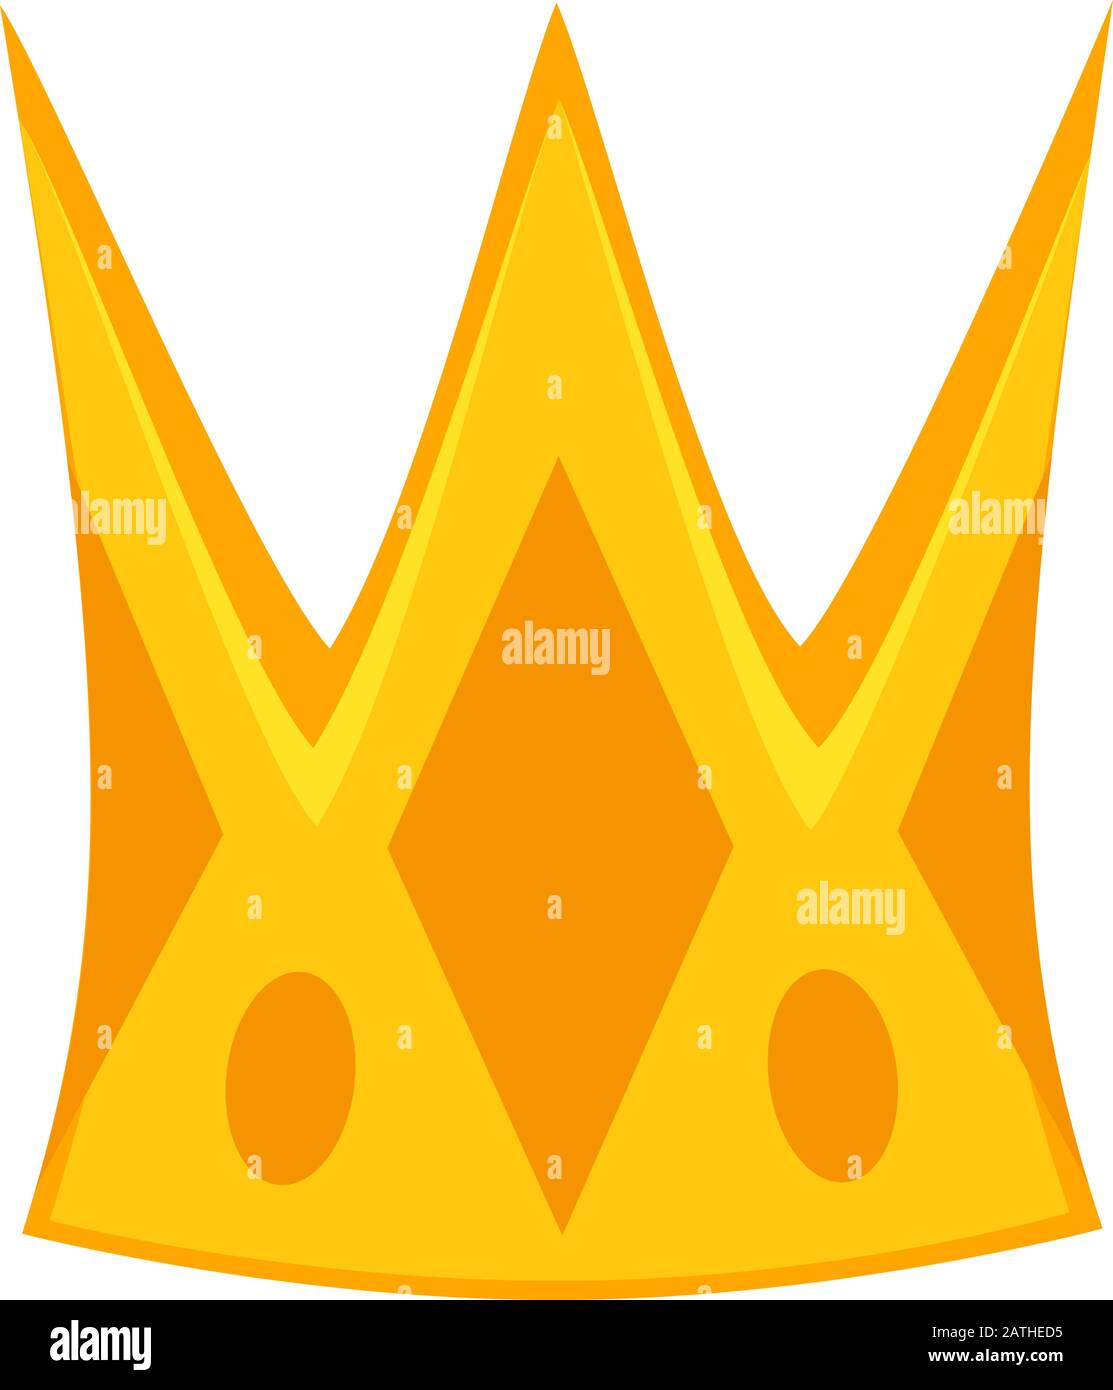 Cartoon Golden Fairytale Crown Medieval Festival Props Fairy Tale Theme Vector Illustration For Icon Stamp Label Certificate Gift Card Invitati Stock Vector Image Art Alamy Armstreet's designs are absolutely original, created by us from the scratch. alamy